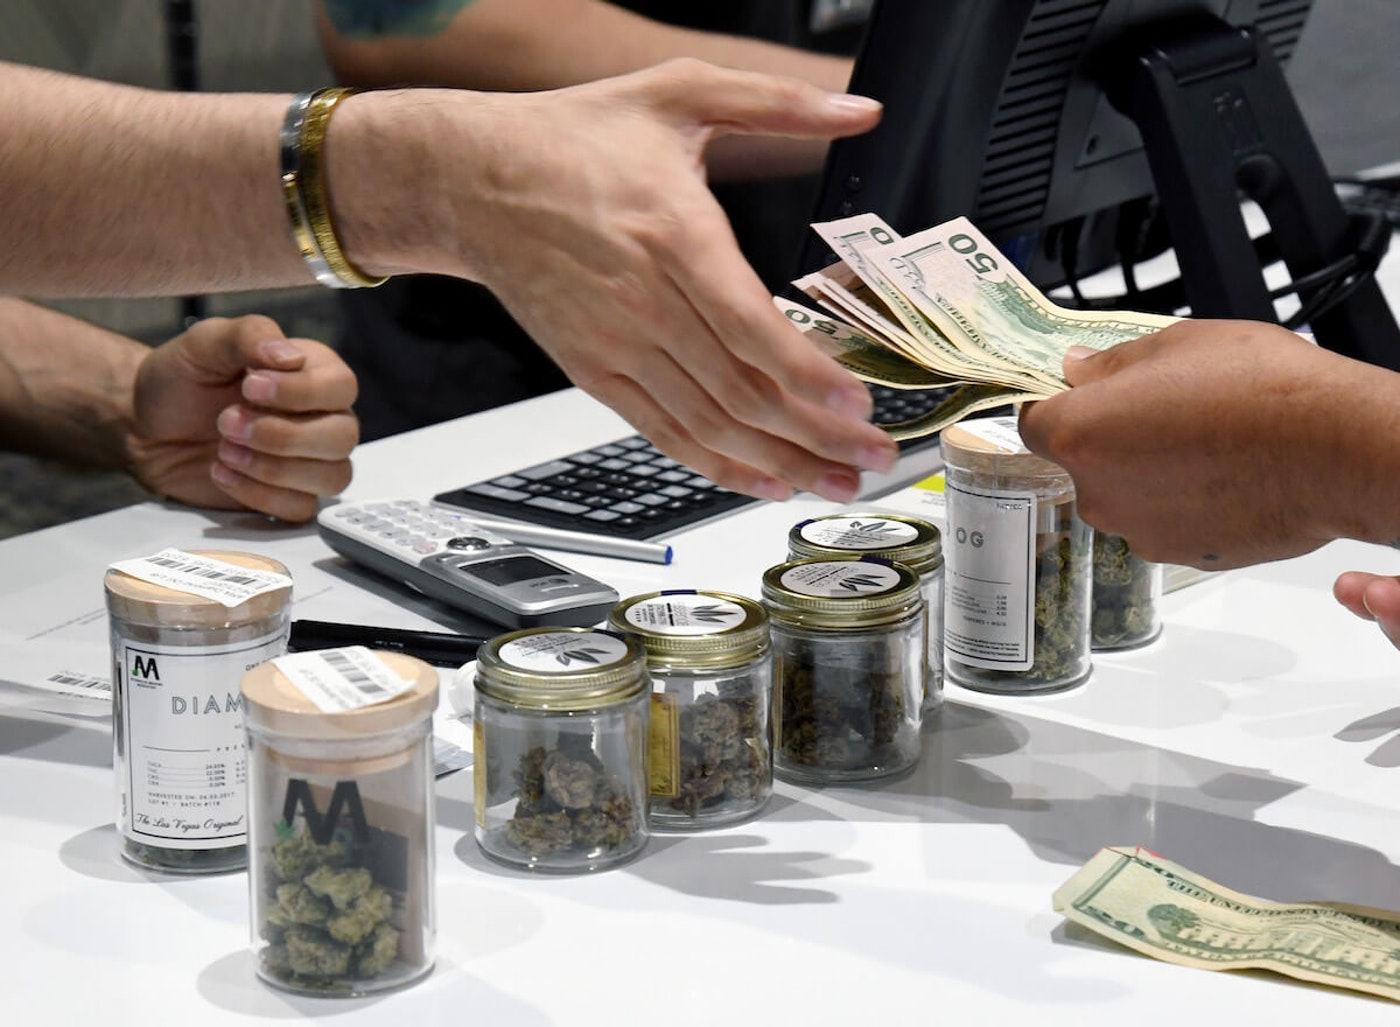 FILE - In this 2017 photo, a customer pays for cannabis products at Las Vegas dispensary. (Photo by Ethan Miller/Getty Images)